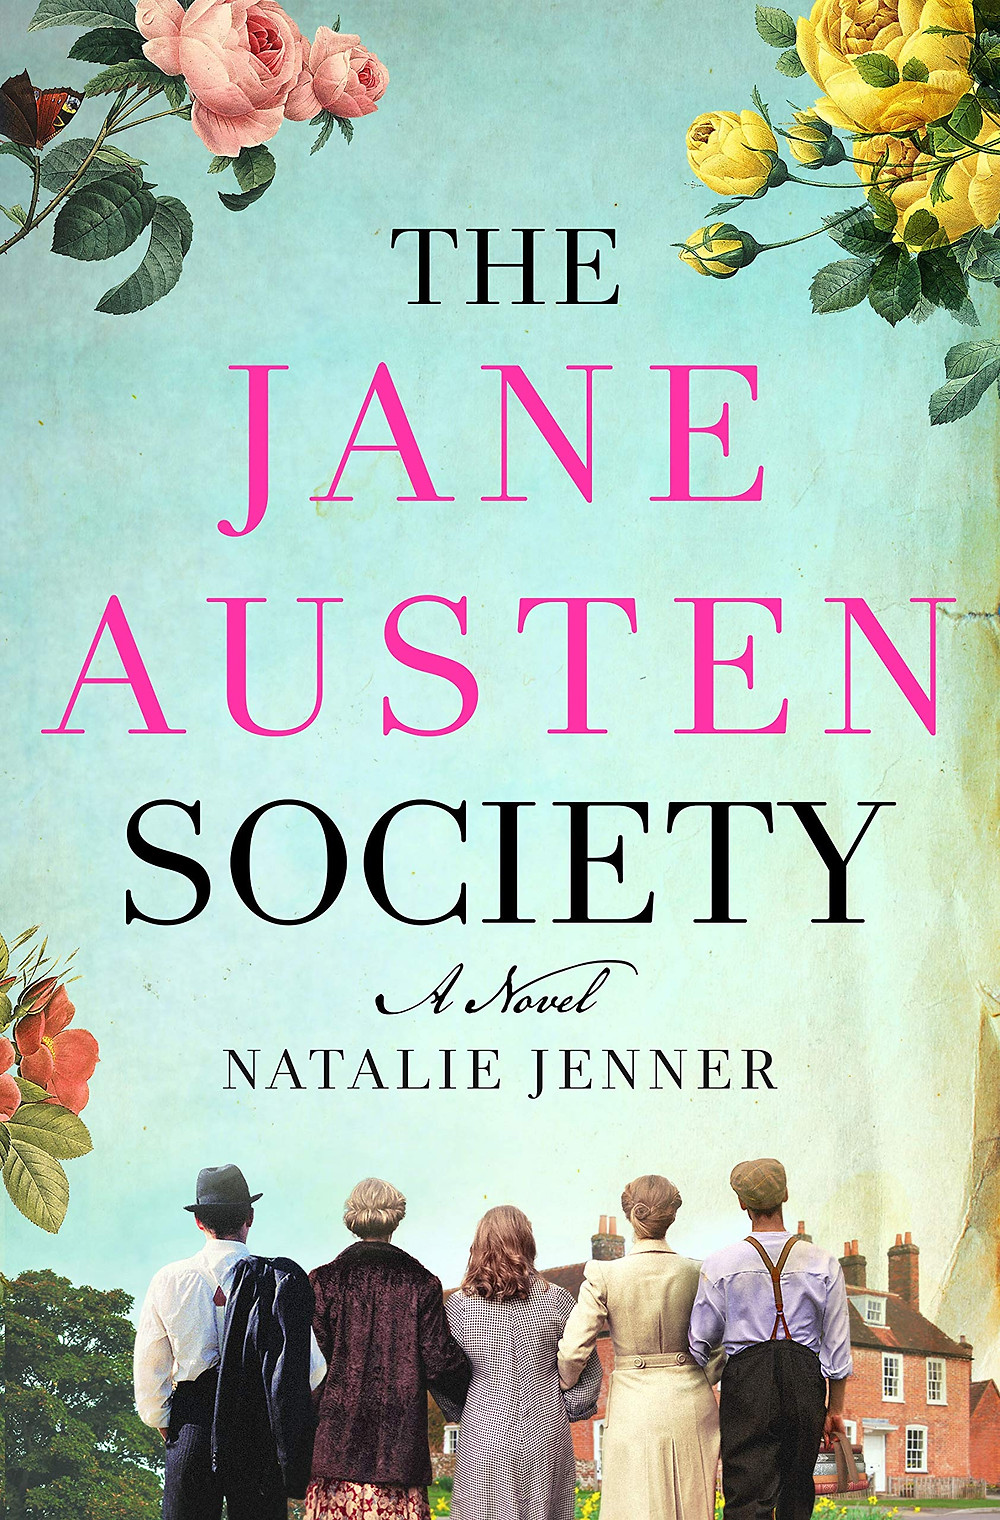 book cover of Natalie Jenner's The Jane Austen Society